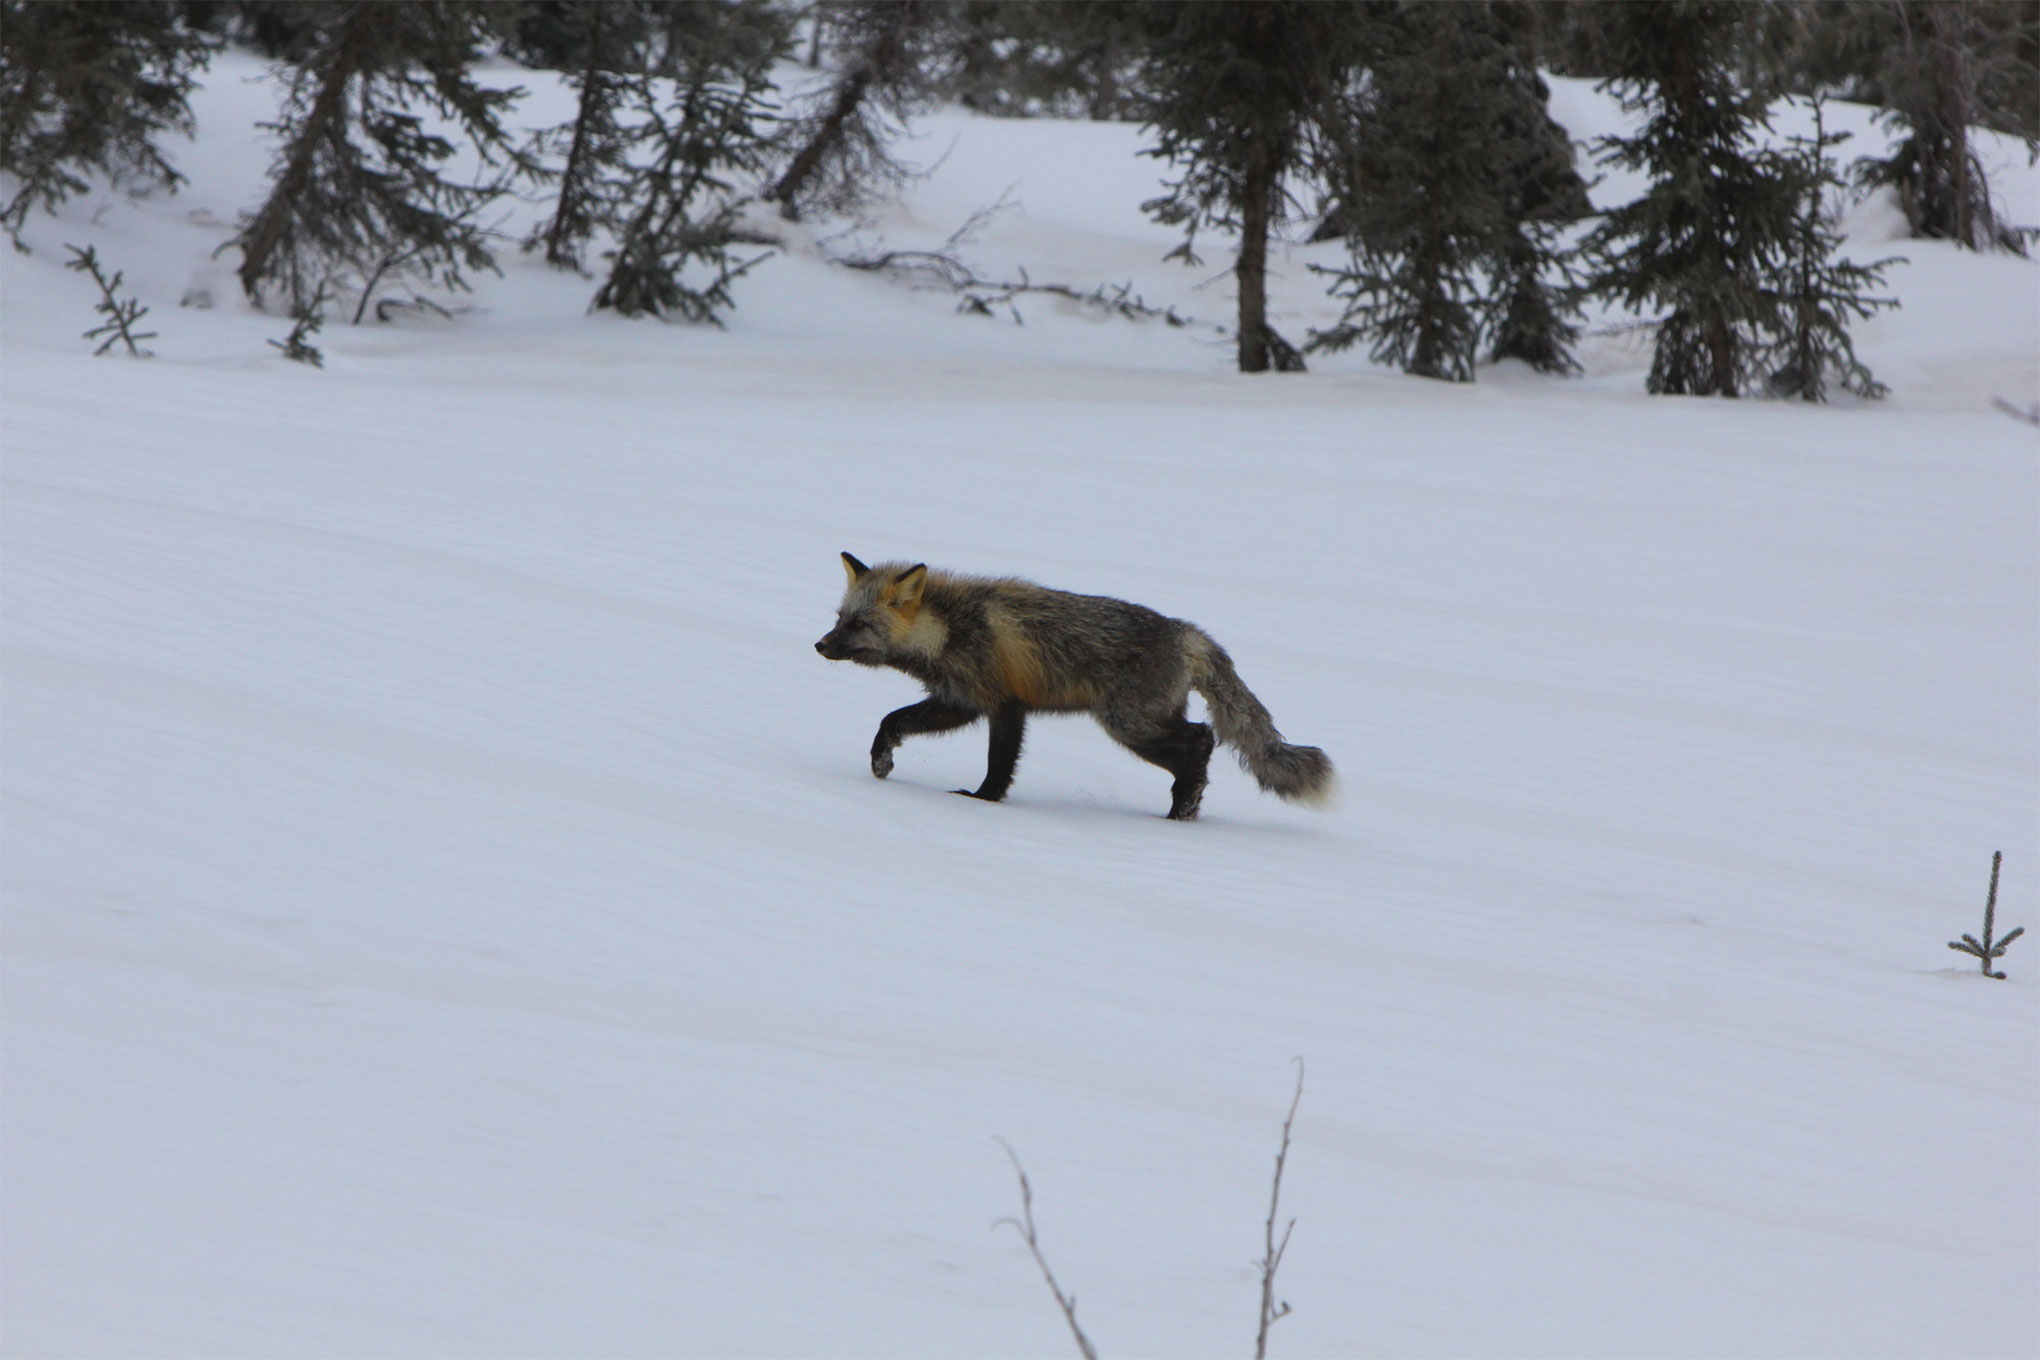 And just as we cleared the whiteout conditions, another local greeted us from the brush and cover. He watched us pass but then ran off uninterested in our big exploration vehicles.